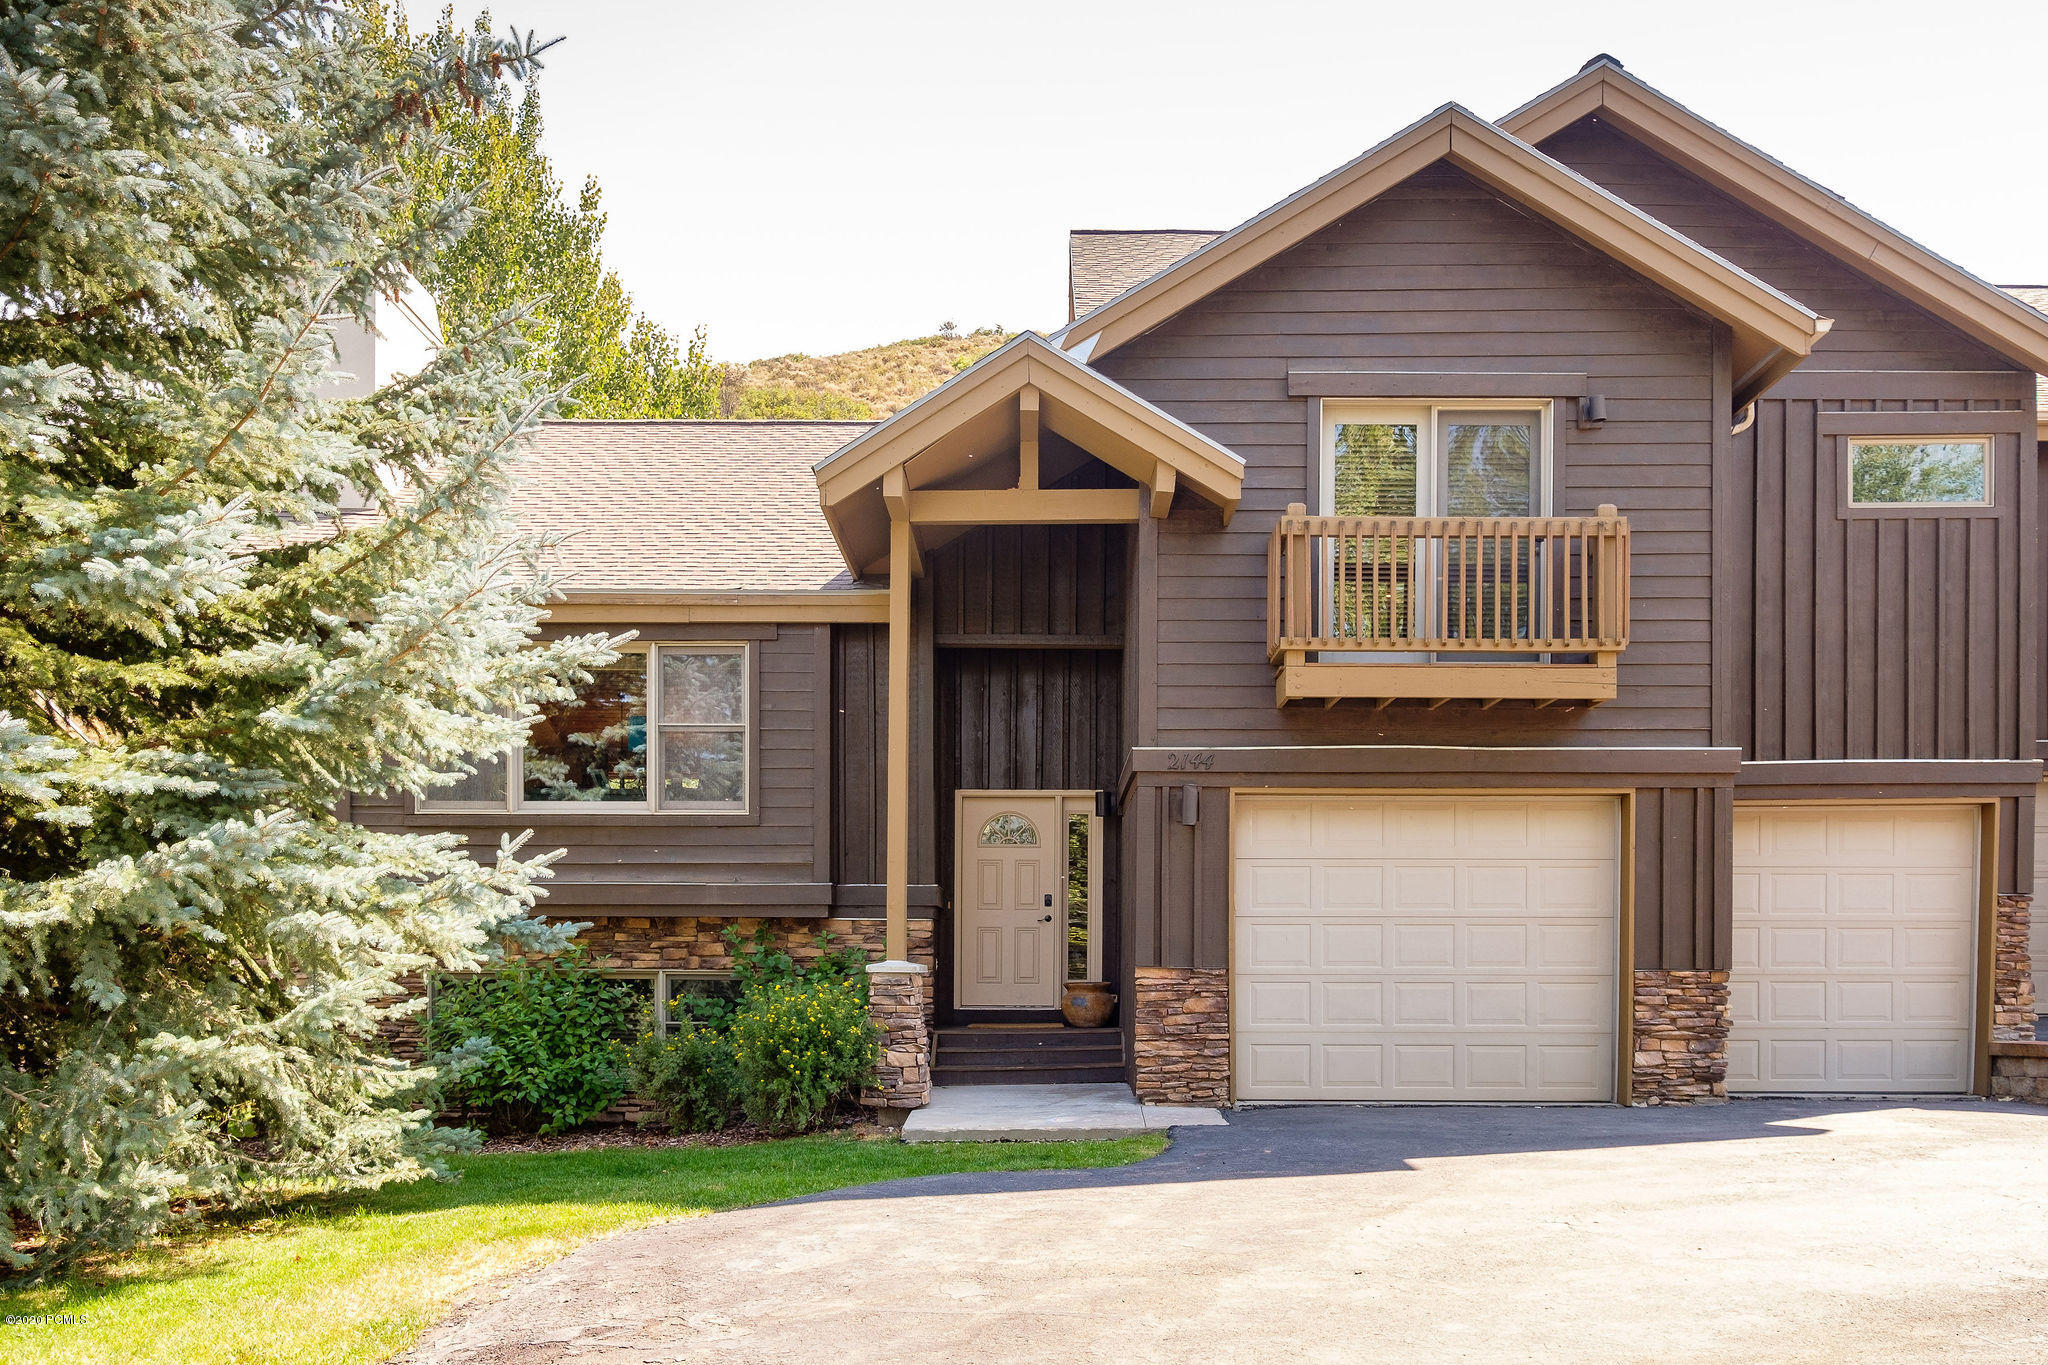 2144 Euston Drive, Park City, Utah 84060, 4 Bedrooms Bedrooms, ,3 BathroomsBathrooms,Condominium,For Sale,Euston,12003082